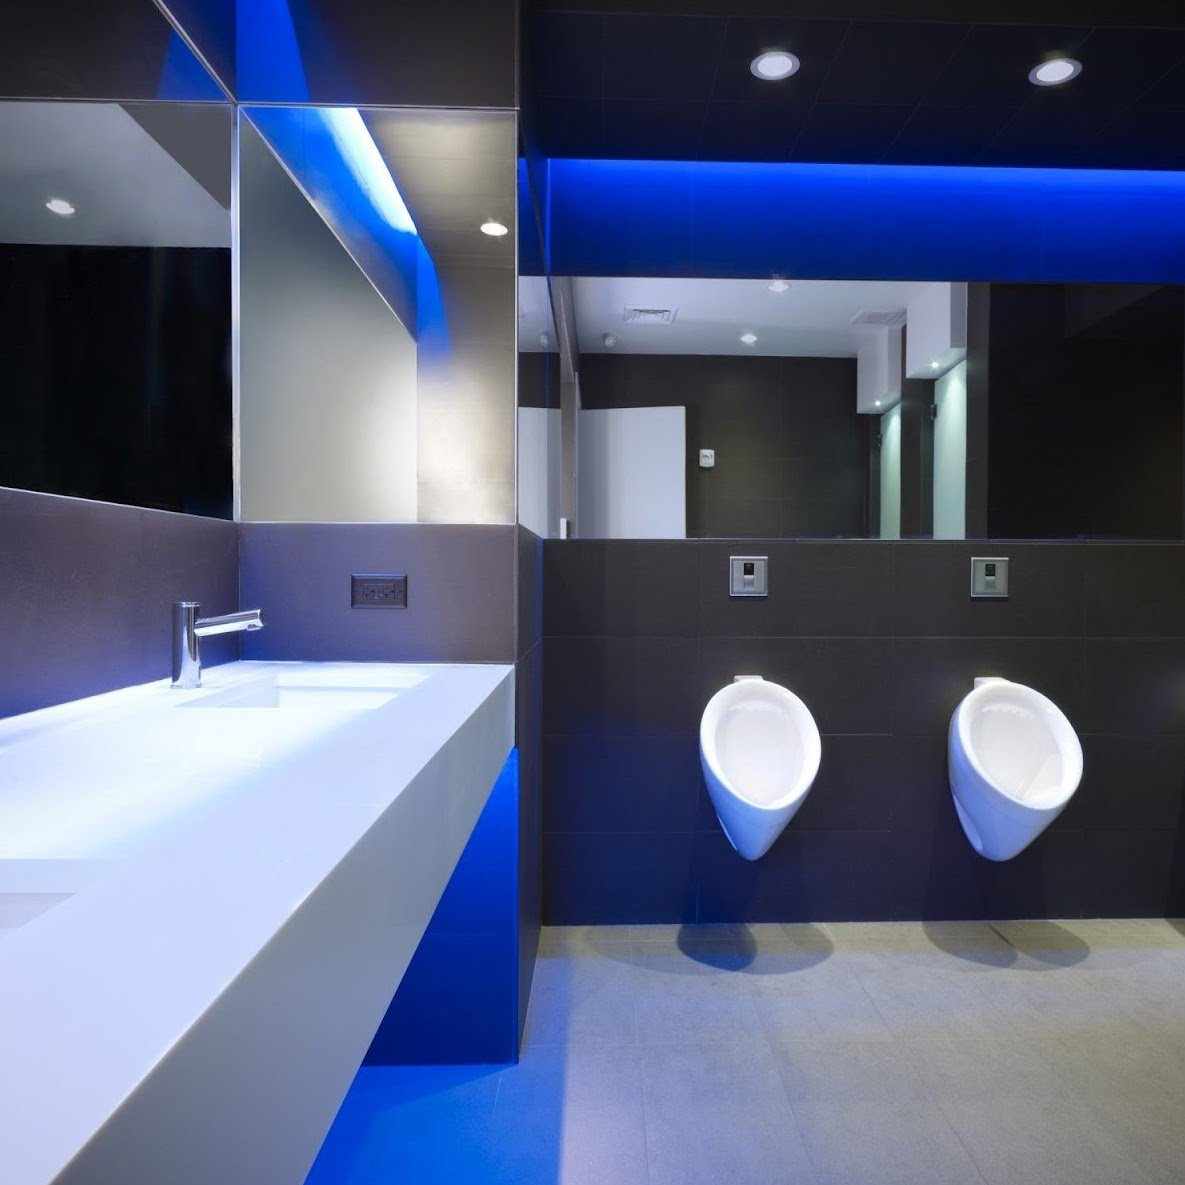 How do you make a corporate washroom inviting?